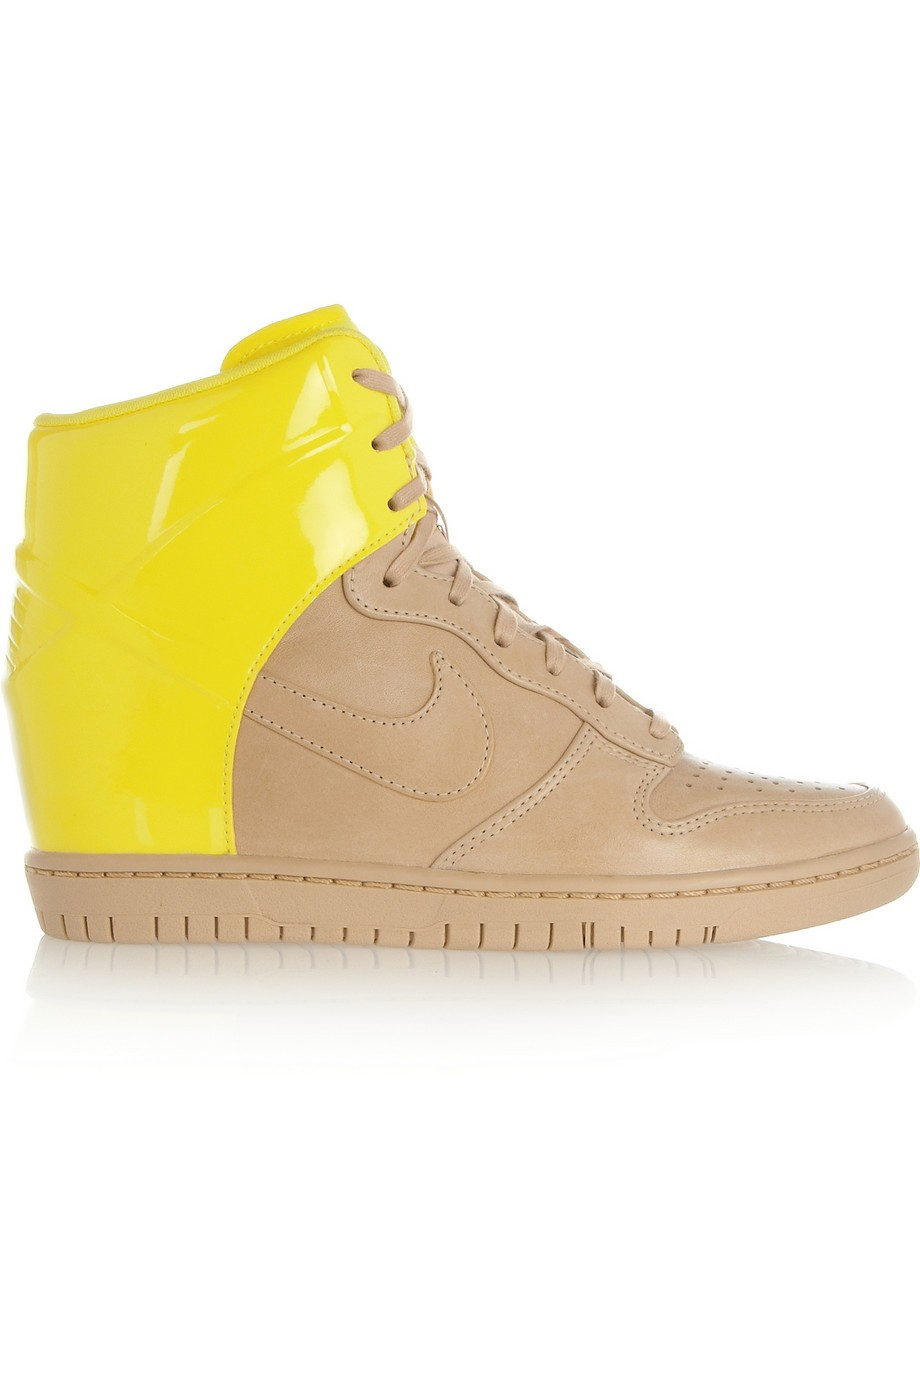 Nike WMNS Dunk Sky Hi Leather Beige Yellow Womens Wedge Sneakers